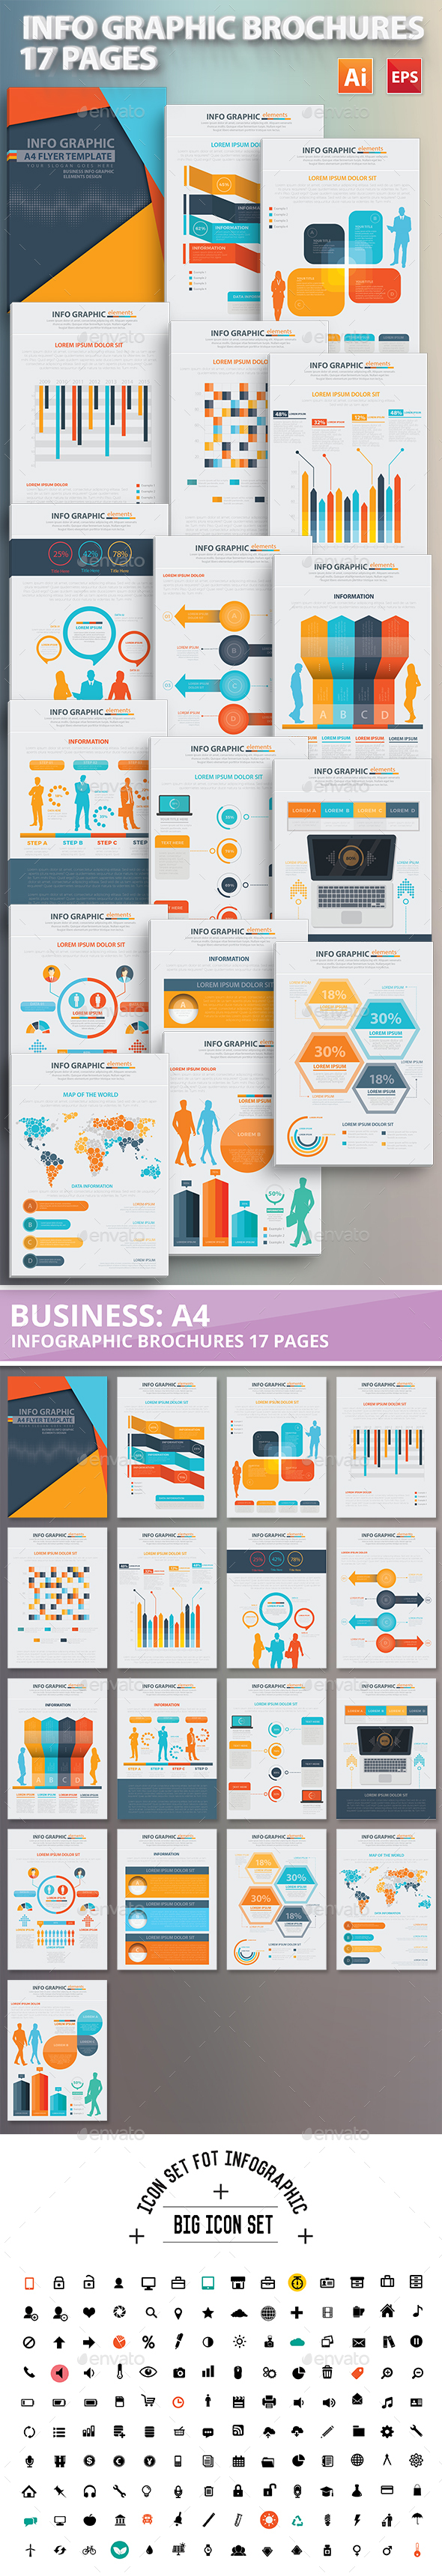 17 Pages Info Graphic Brochures Design - Infographics